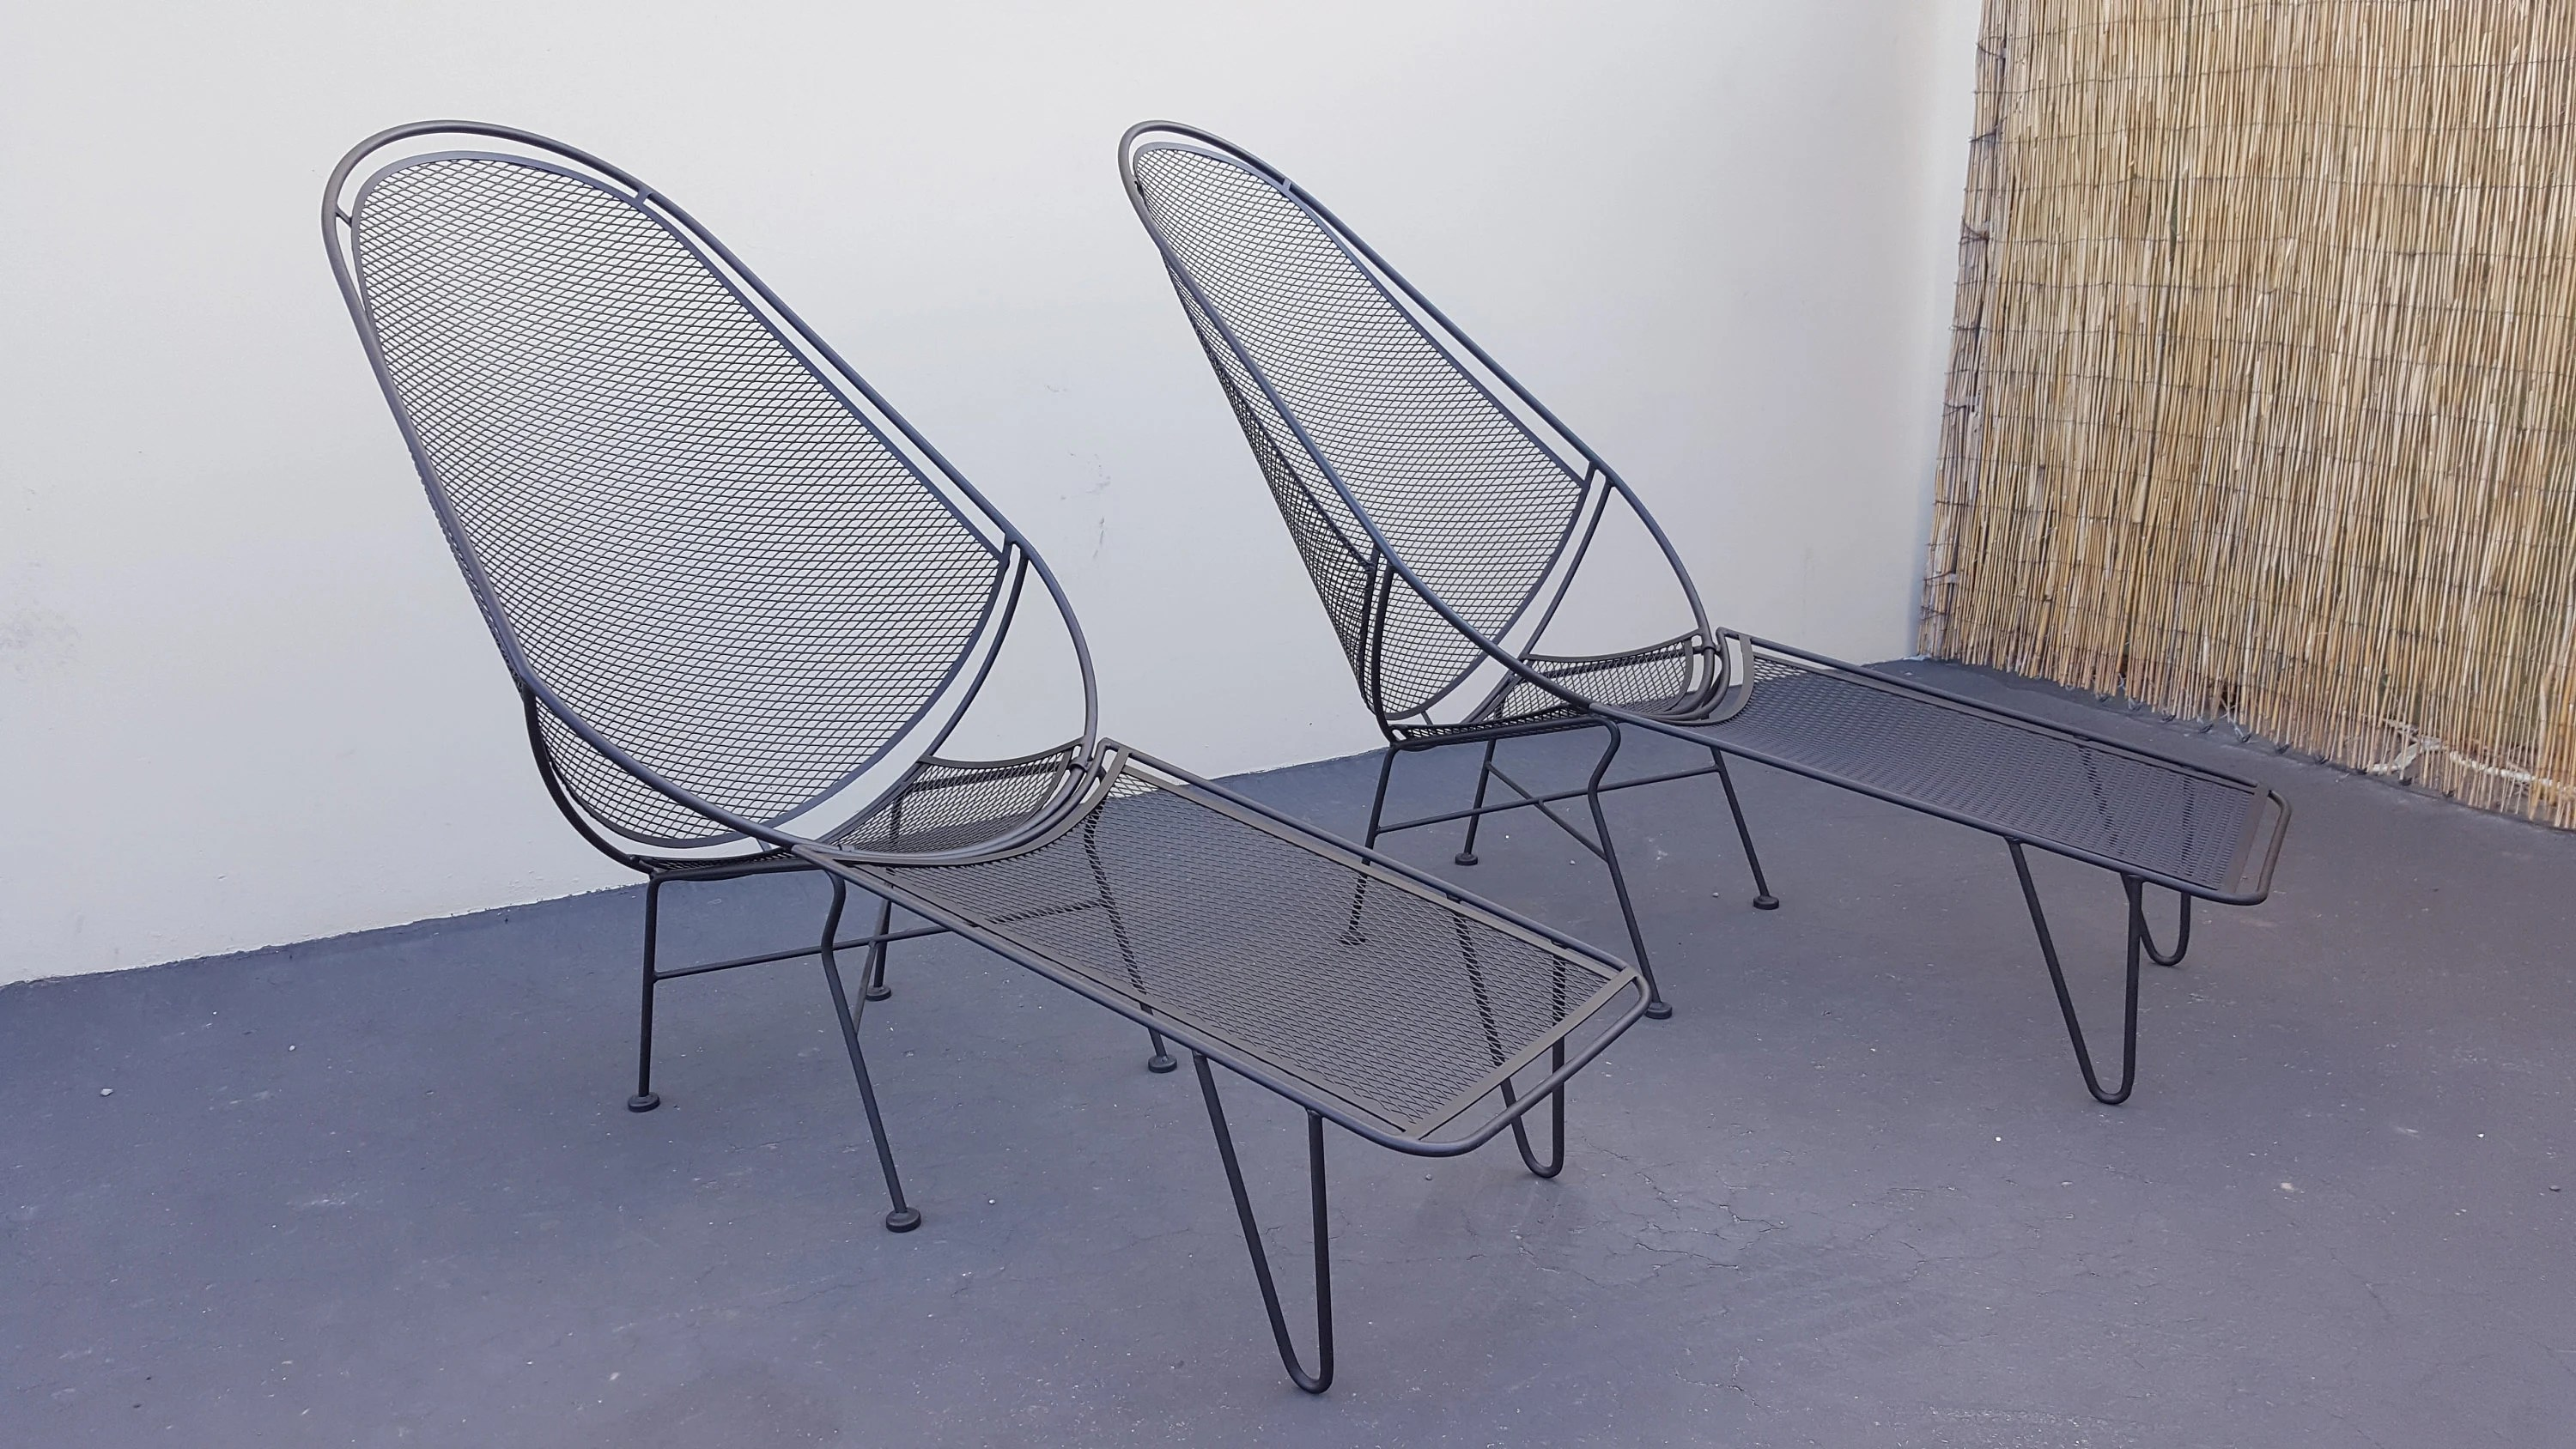 salterini high back lounge chairs 2 2pc set salterini lounges with footrests umanoff keal wrought iron lounge chairs patio set mid century